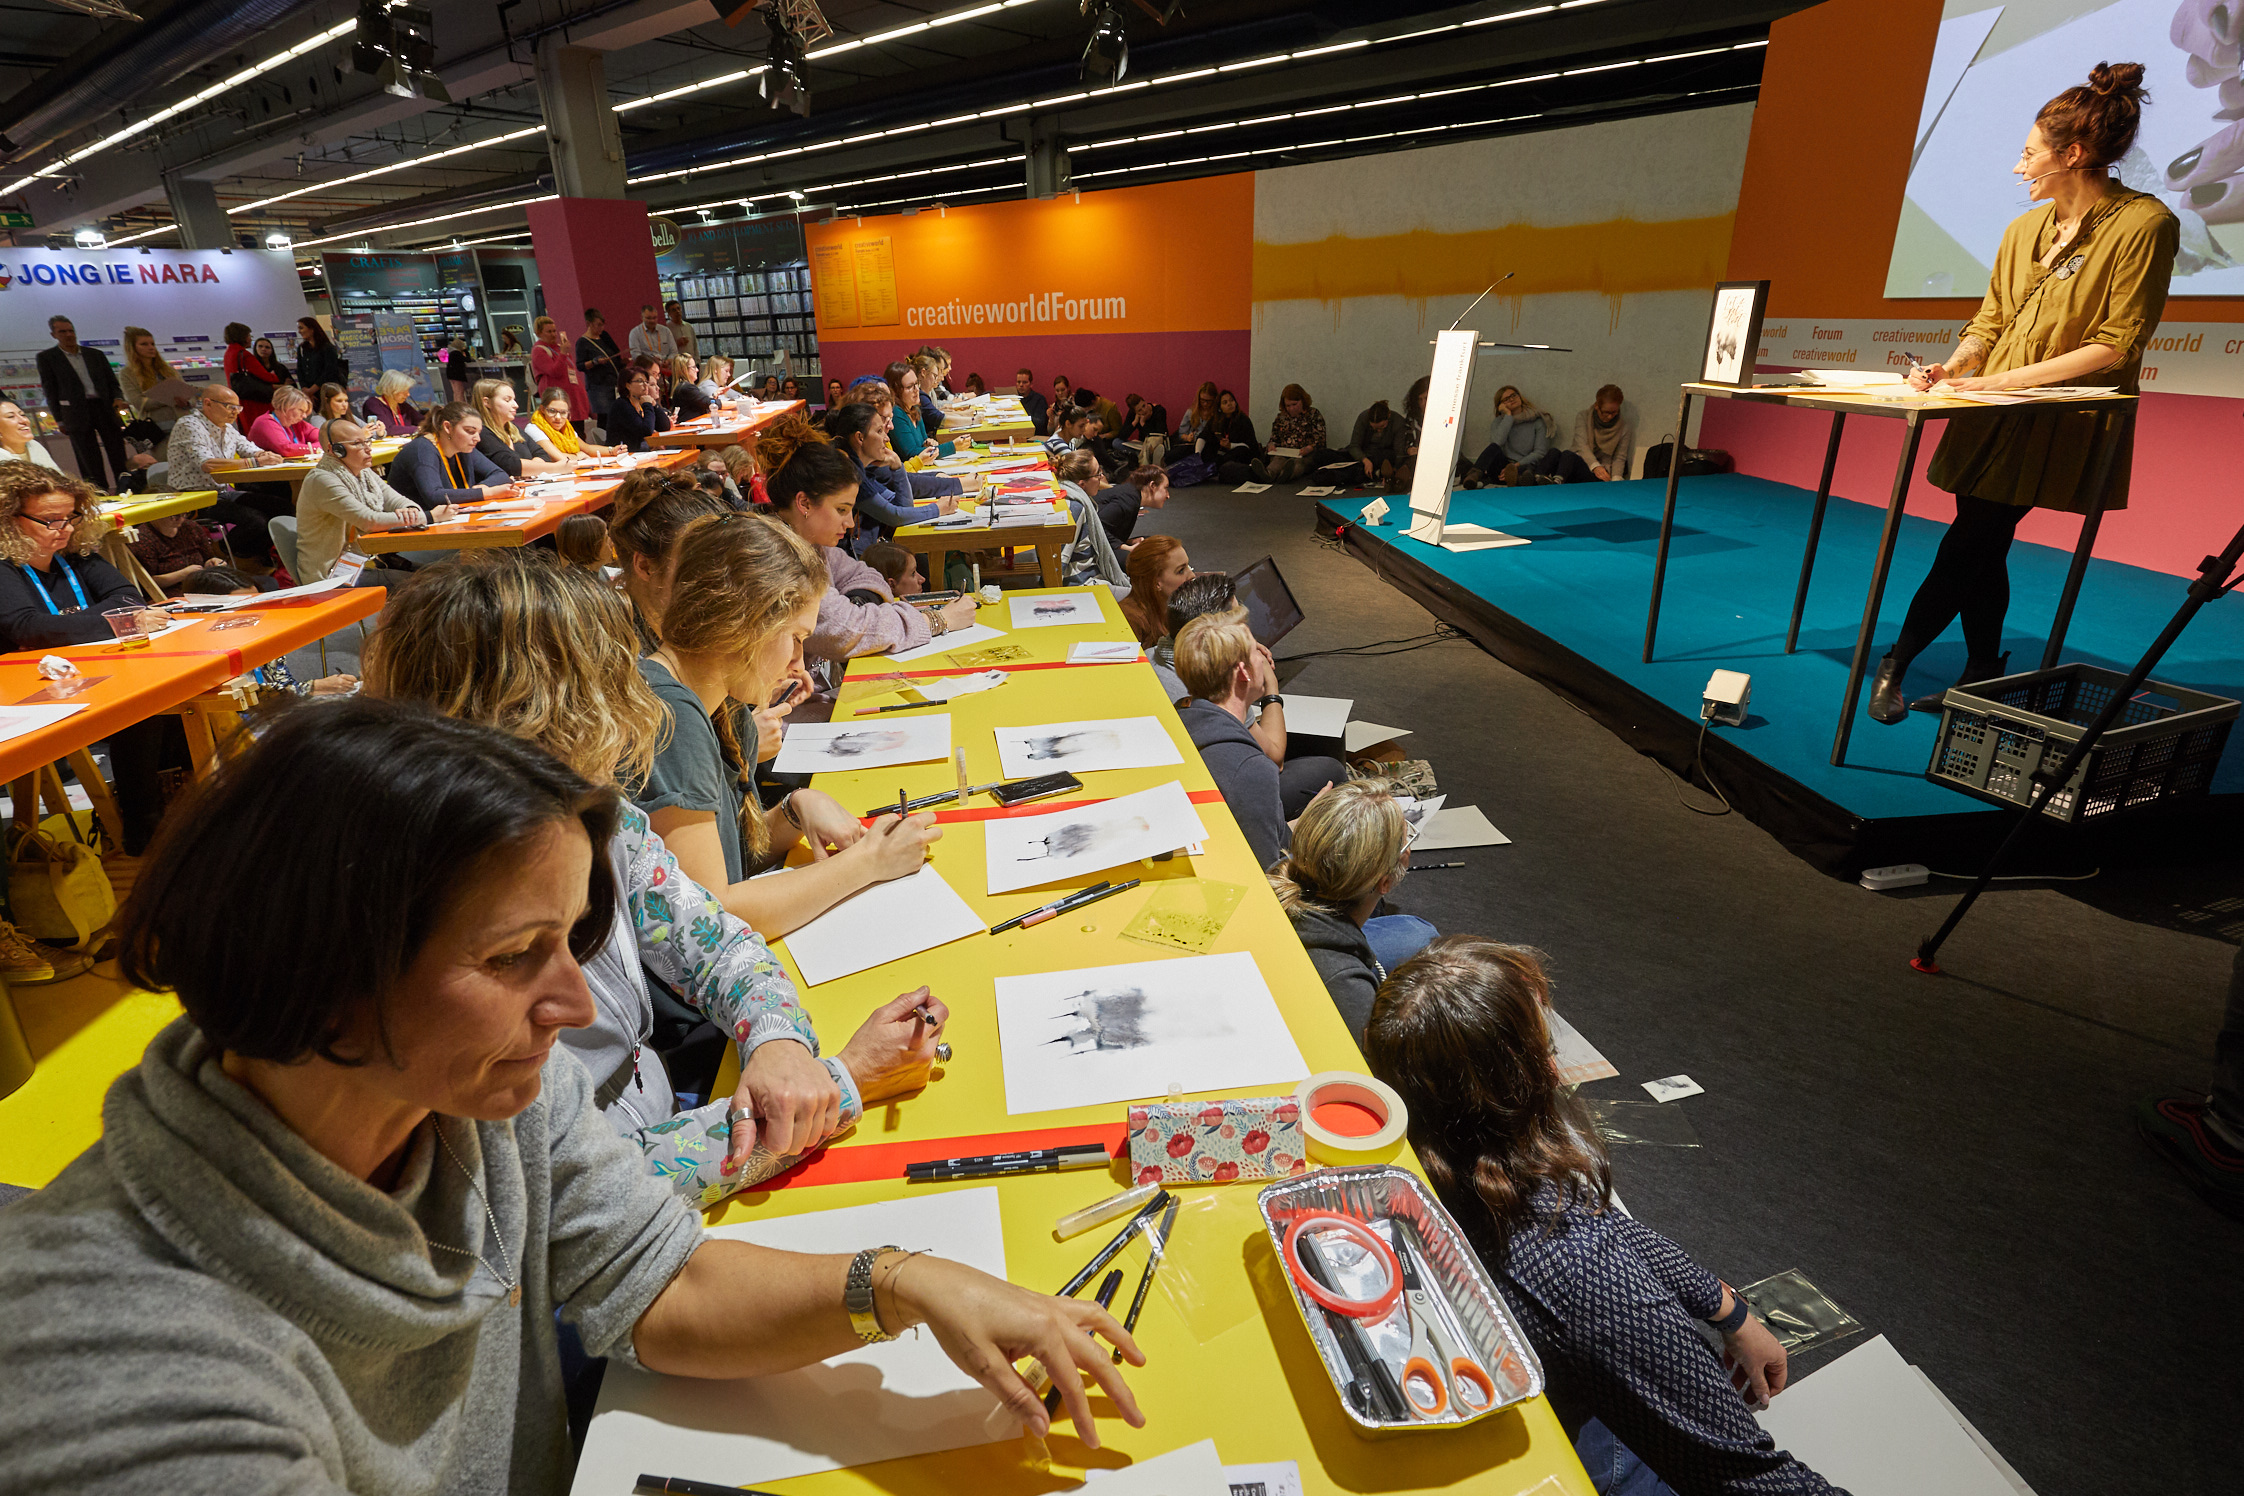 Creativeworld Academy – fully booked workshop with Ms. Hölle.